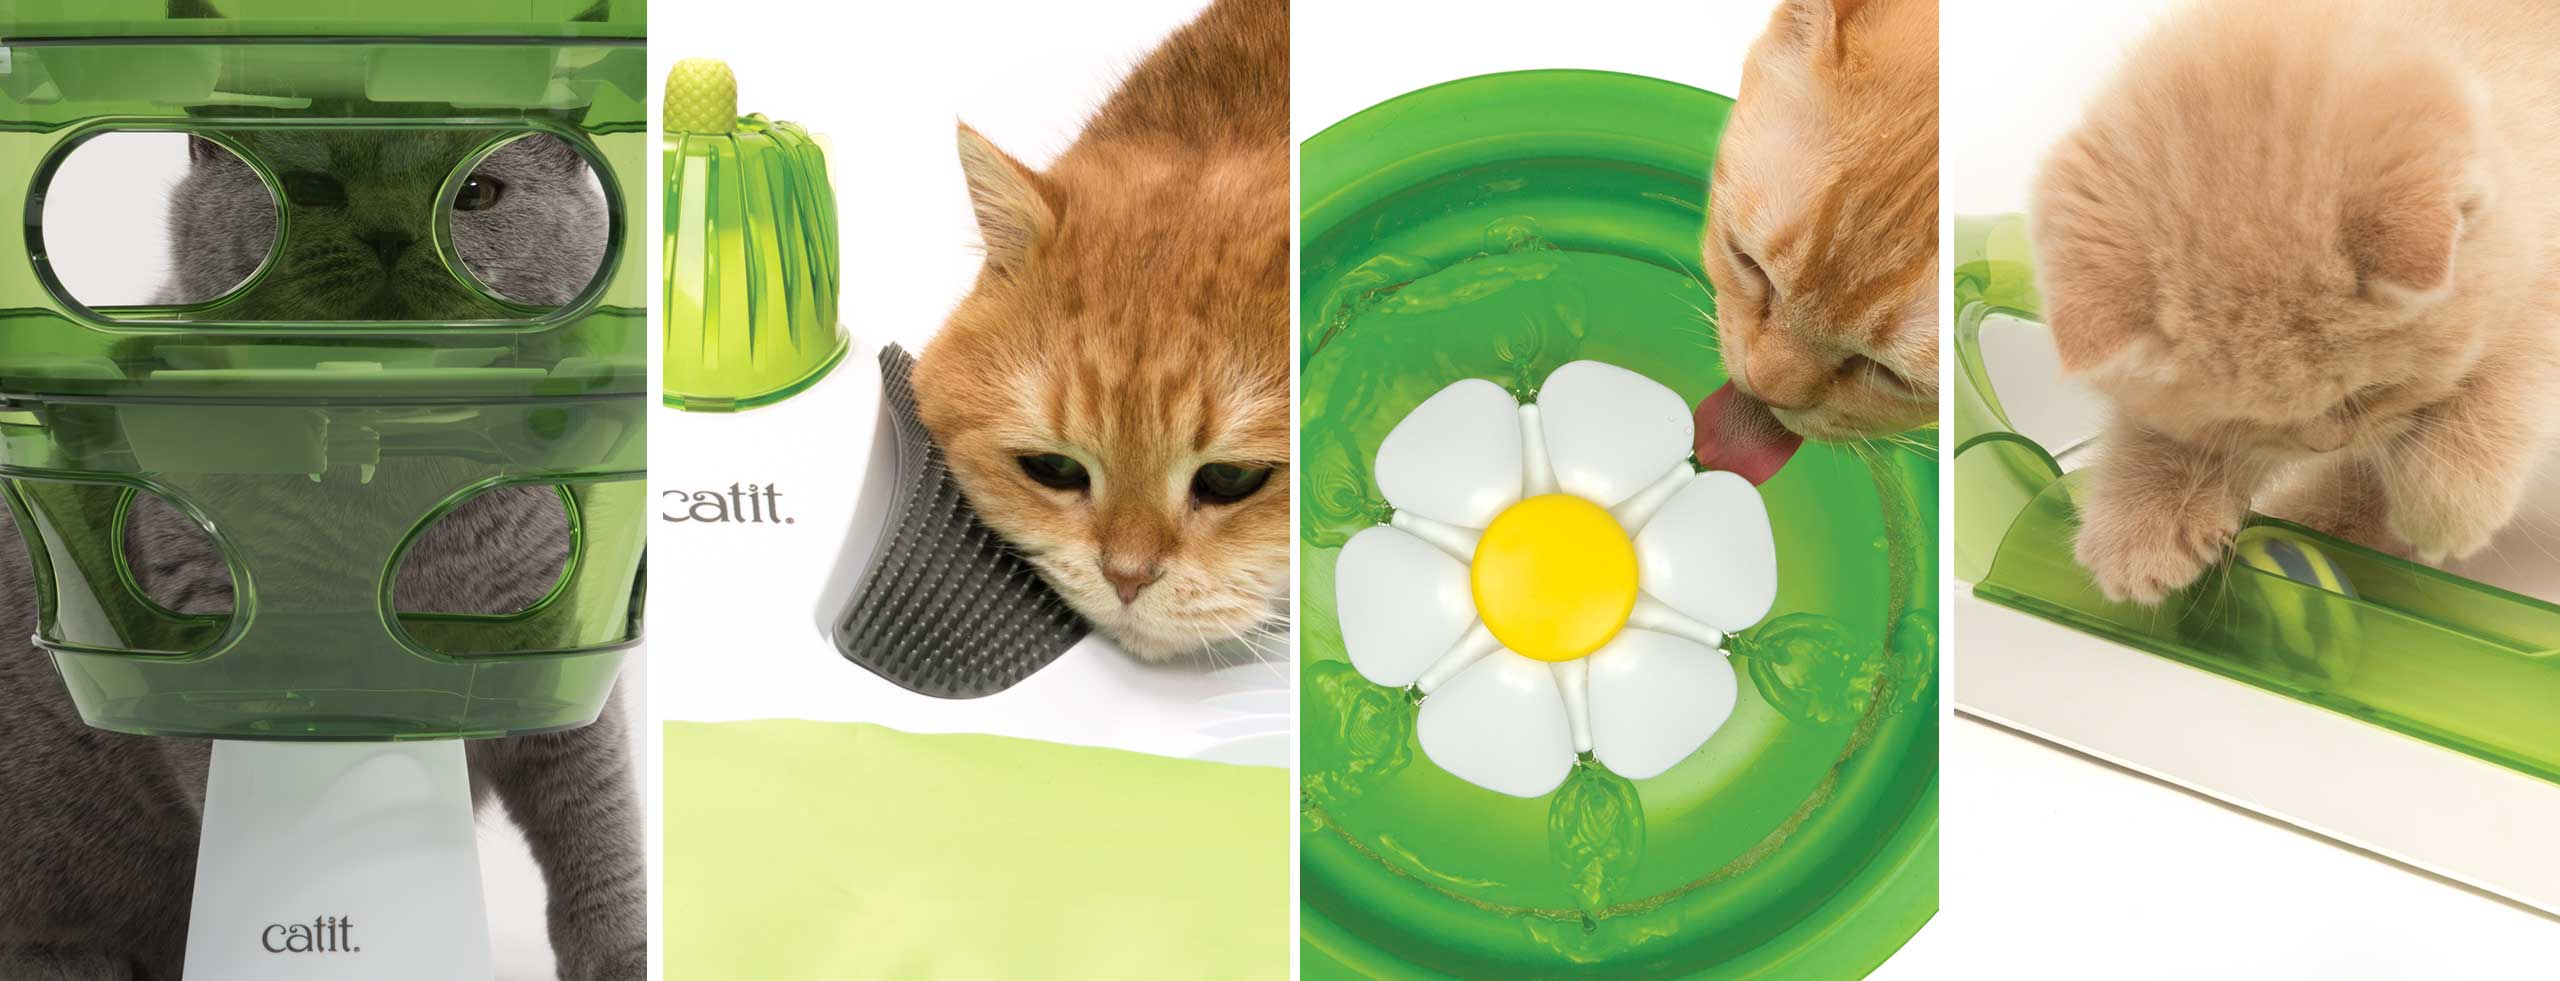 Cute pictures of cats with Catit products